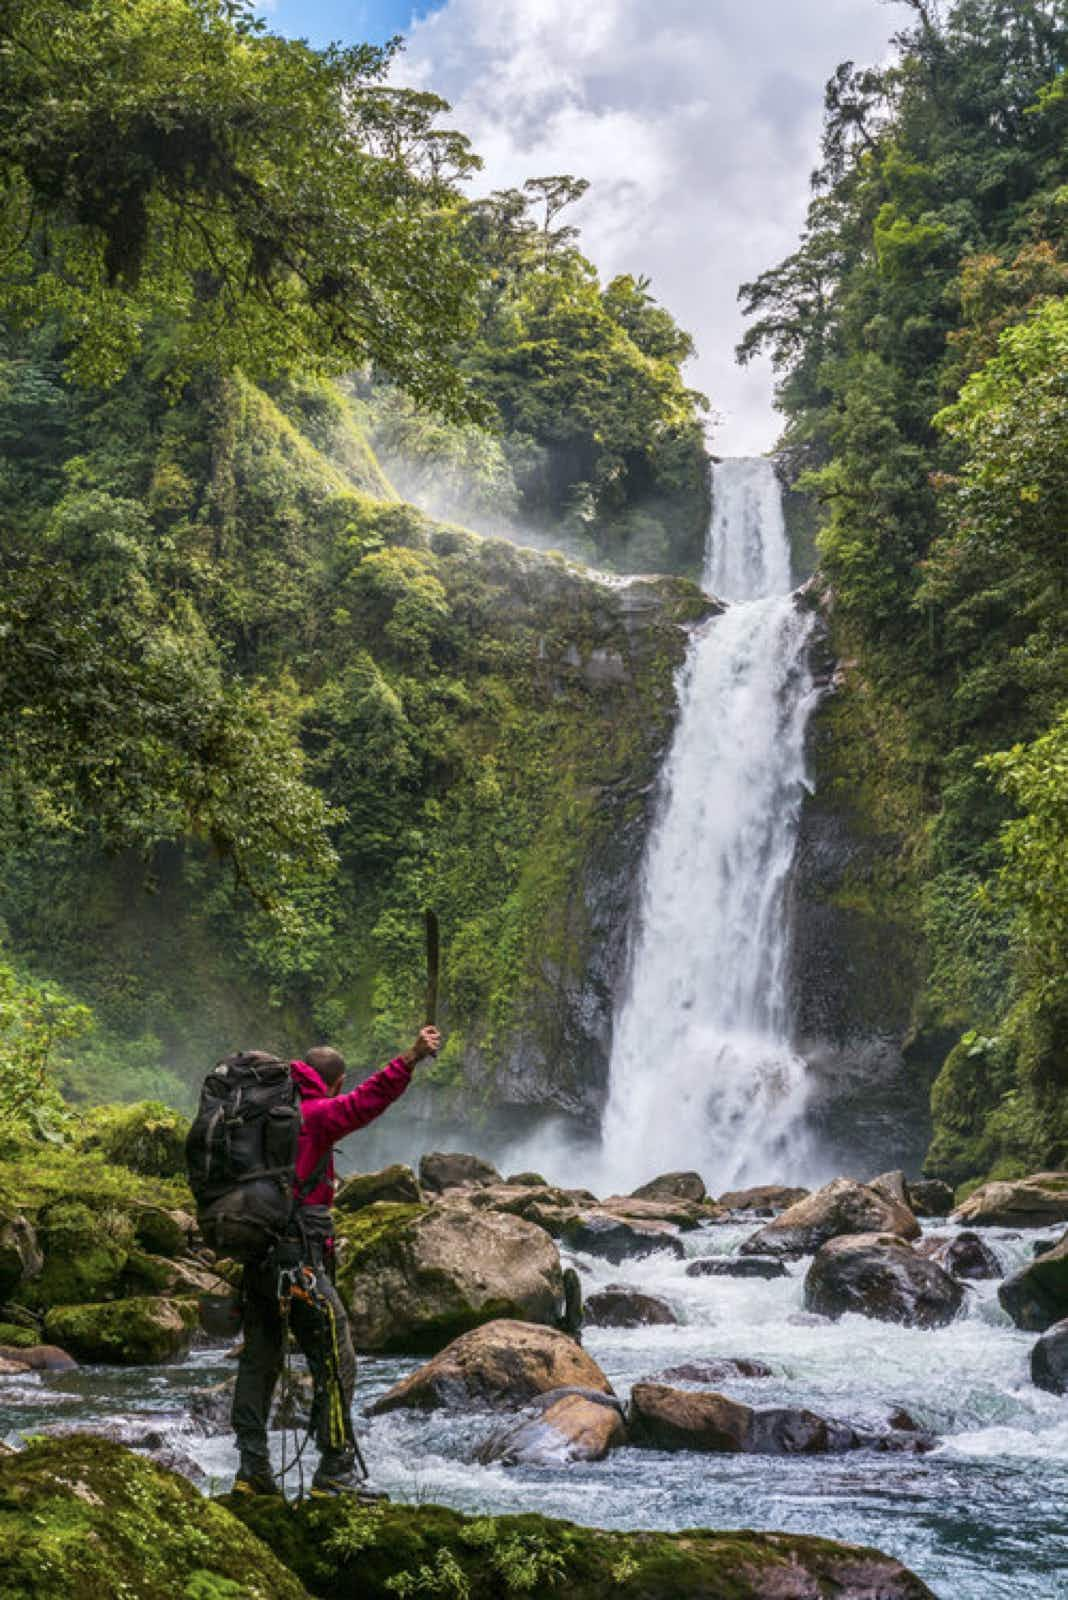 A Costa Rican architect quit his job to search for lost waterfalls